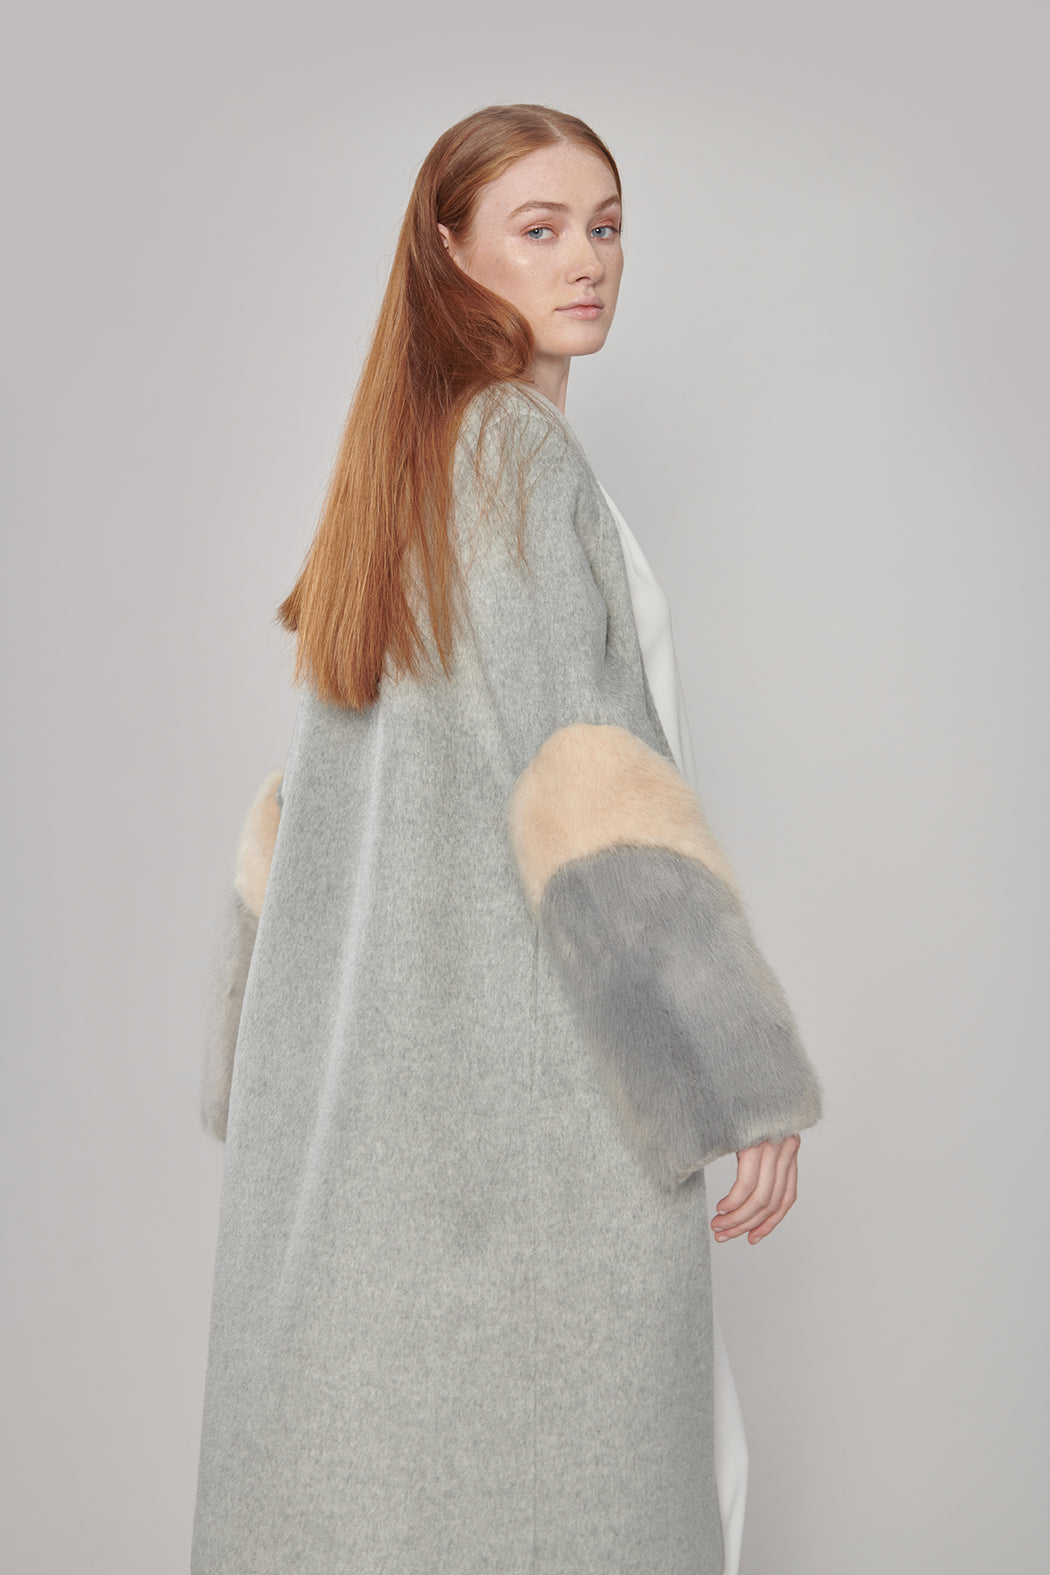 JL048 Luna Vegan Laux-fur Patchwork Coat